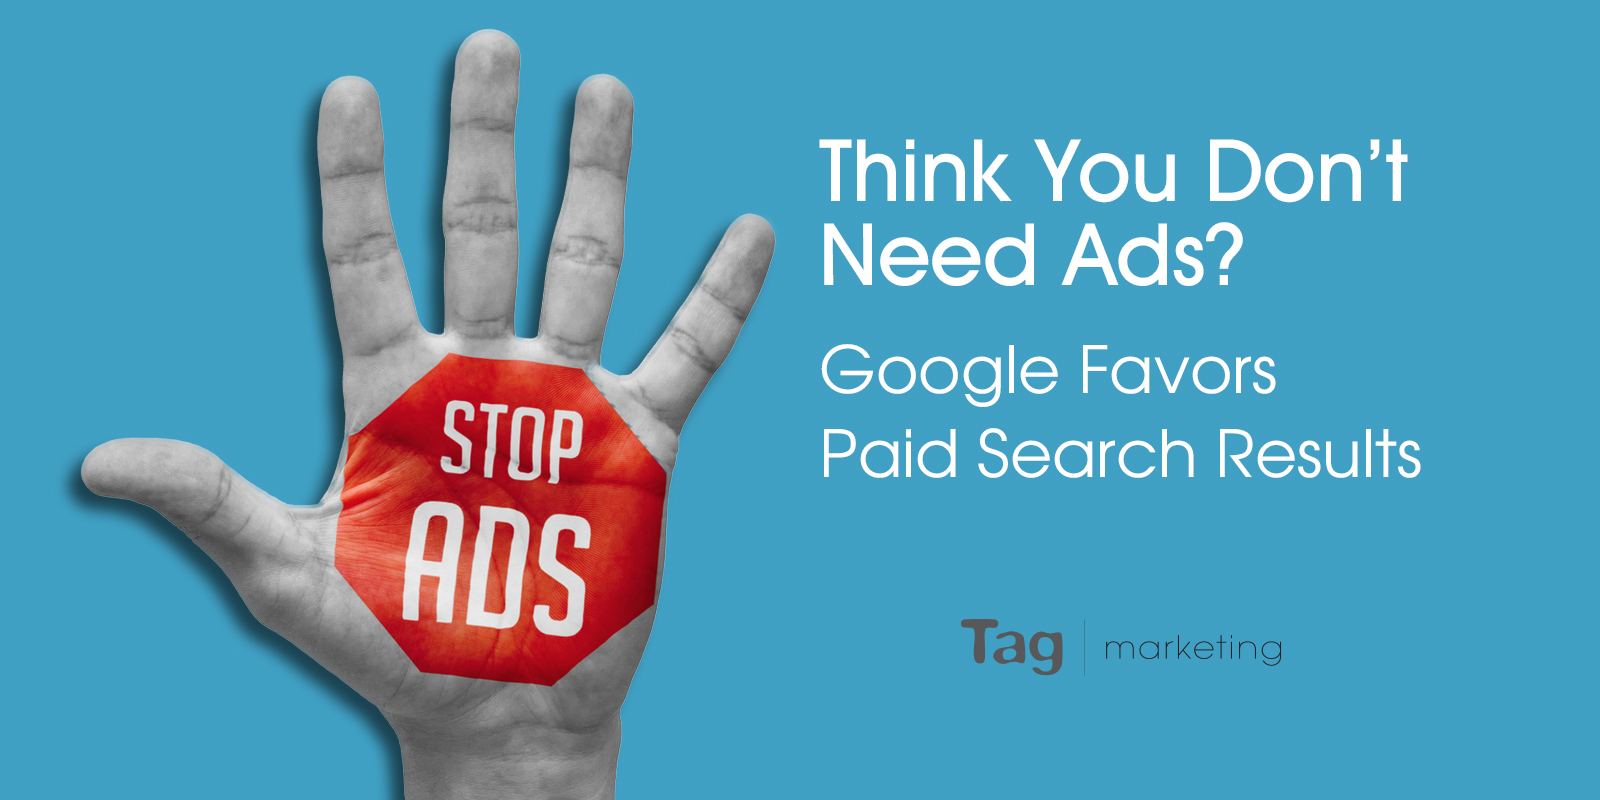 Think You Don't Need Ads? Google Favors Paid Search Results